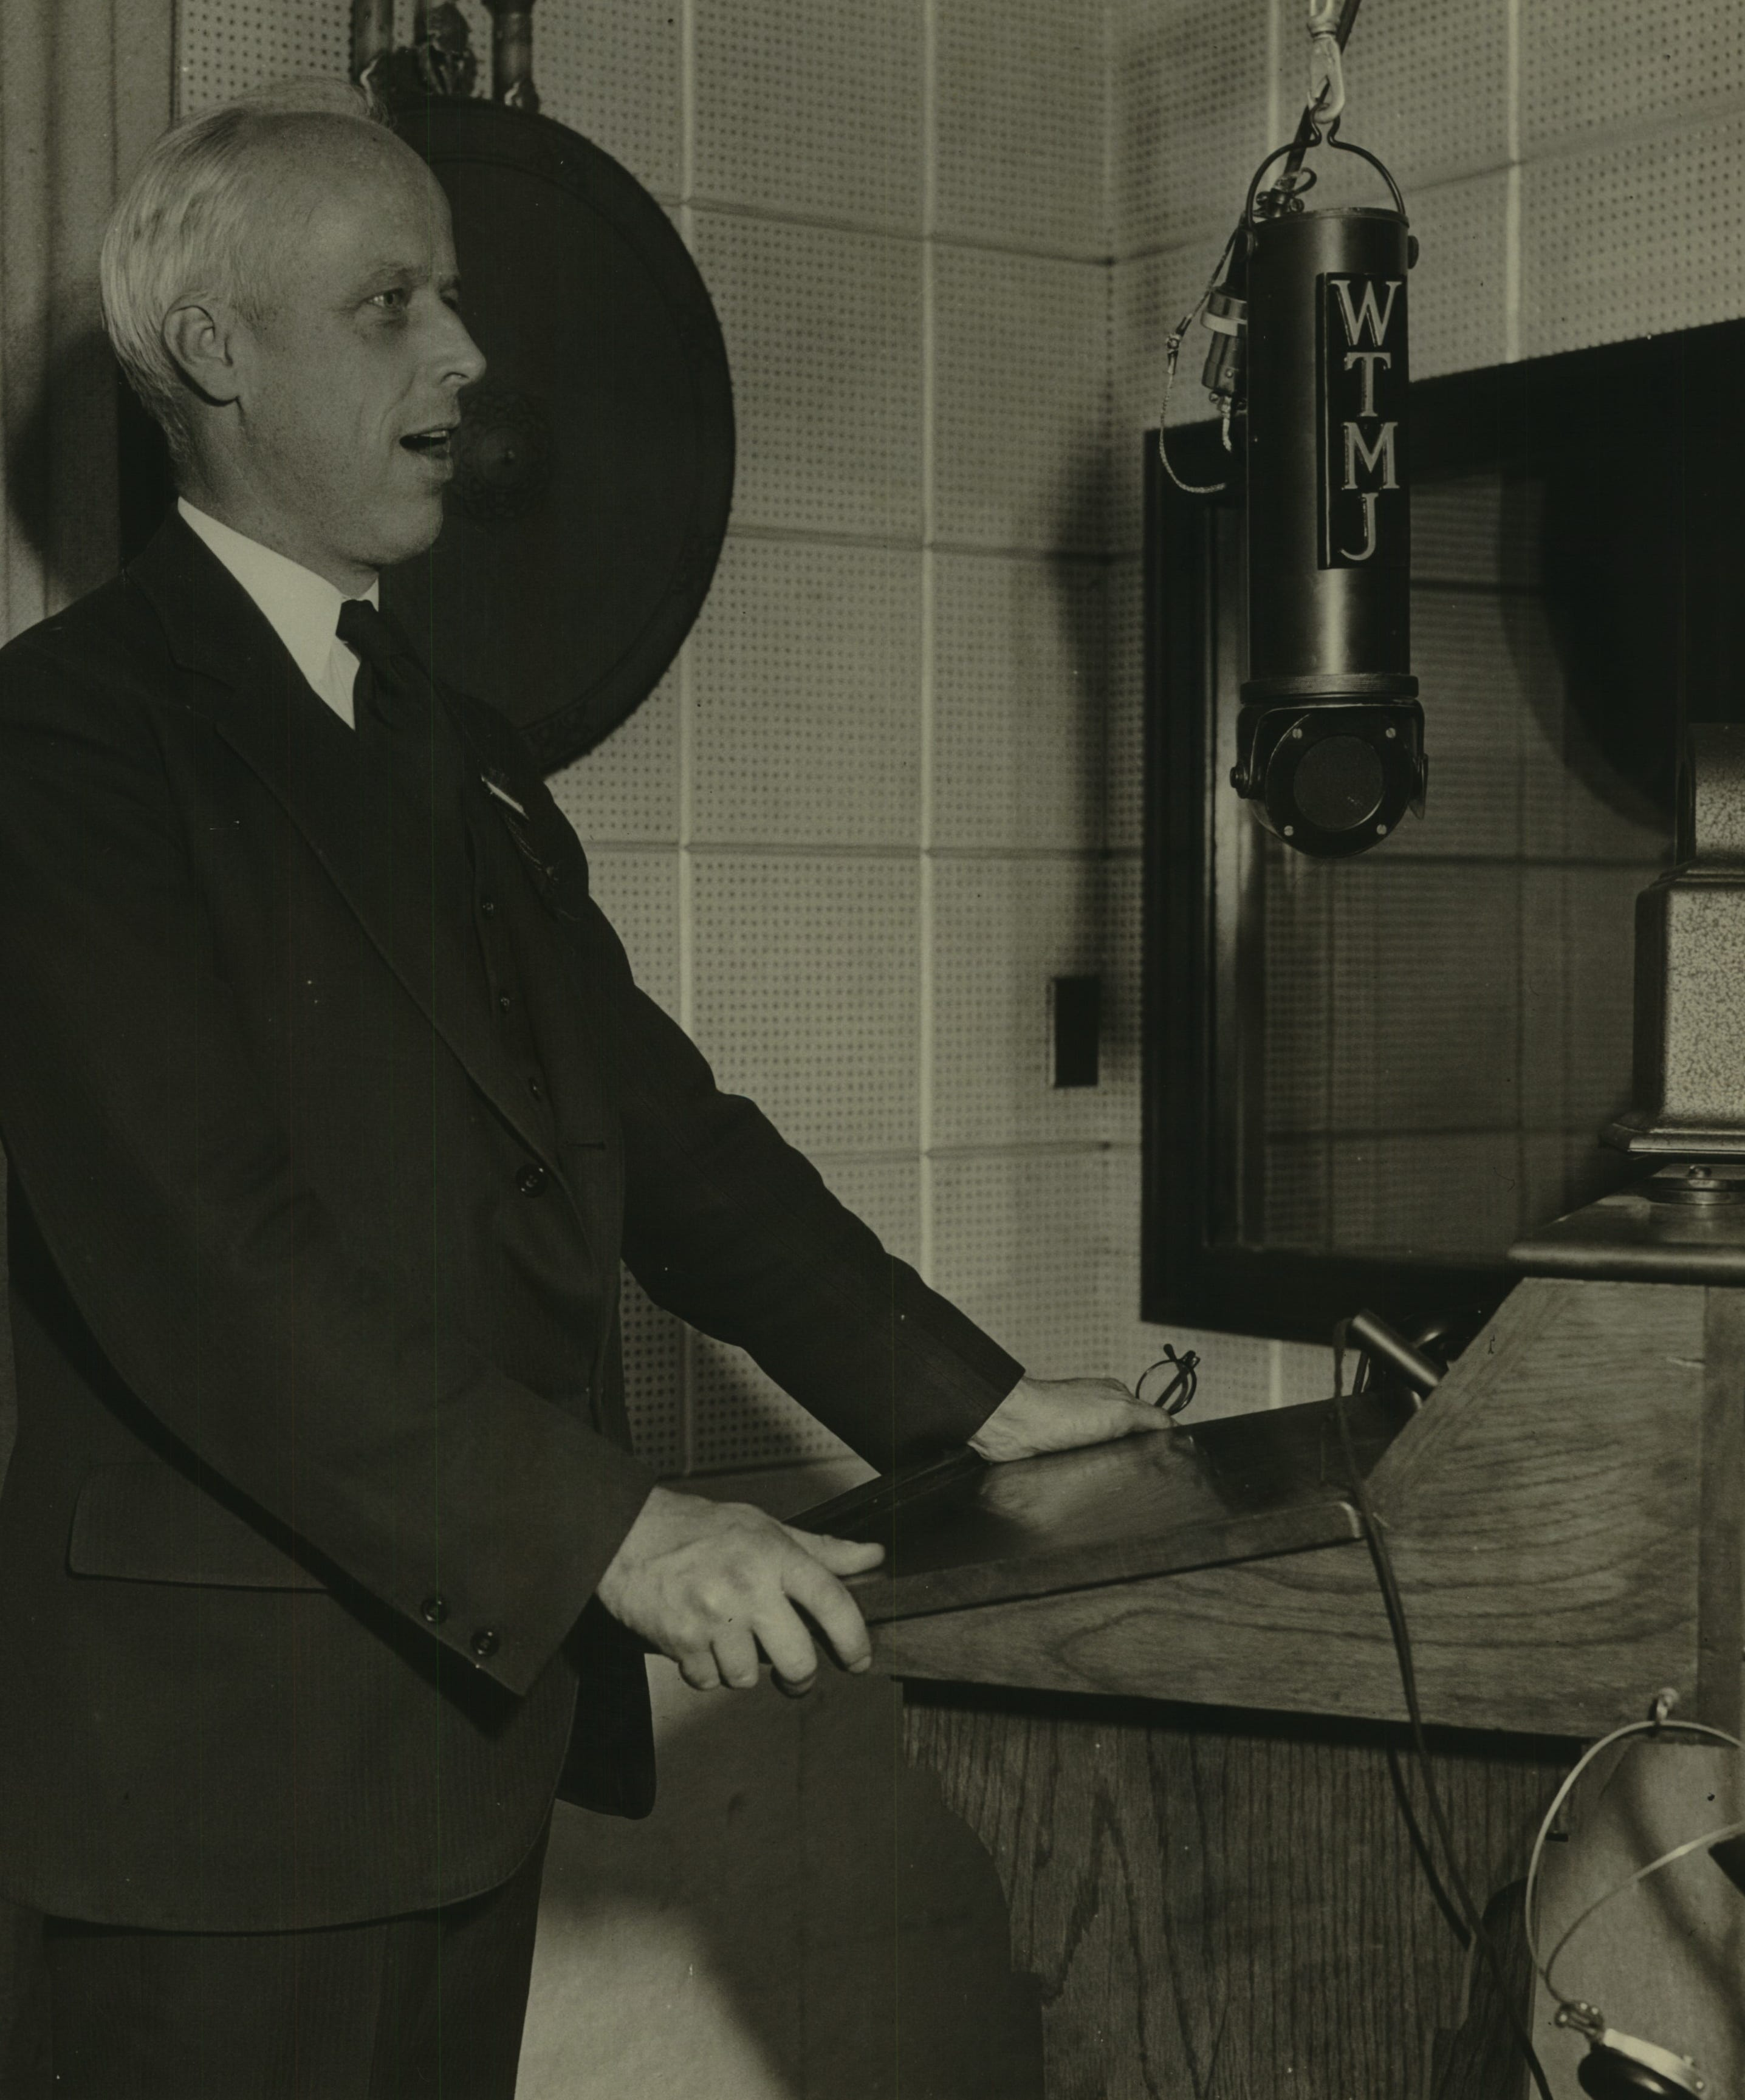 Socialist Party presidential candidate Norman Thomas addresses the radio audience over WTMJ on May 22, 1932.